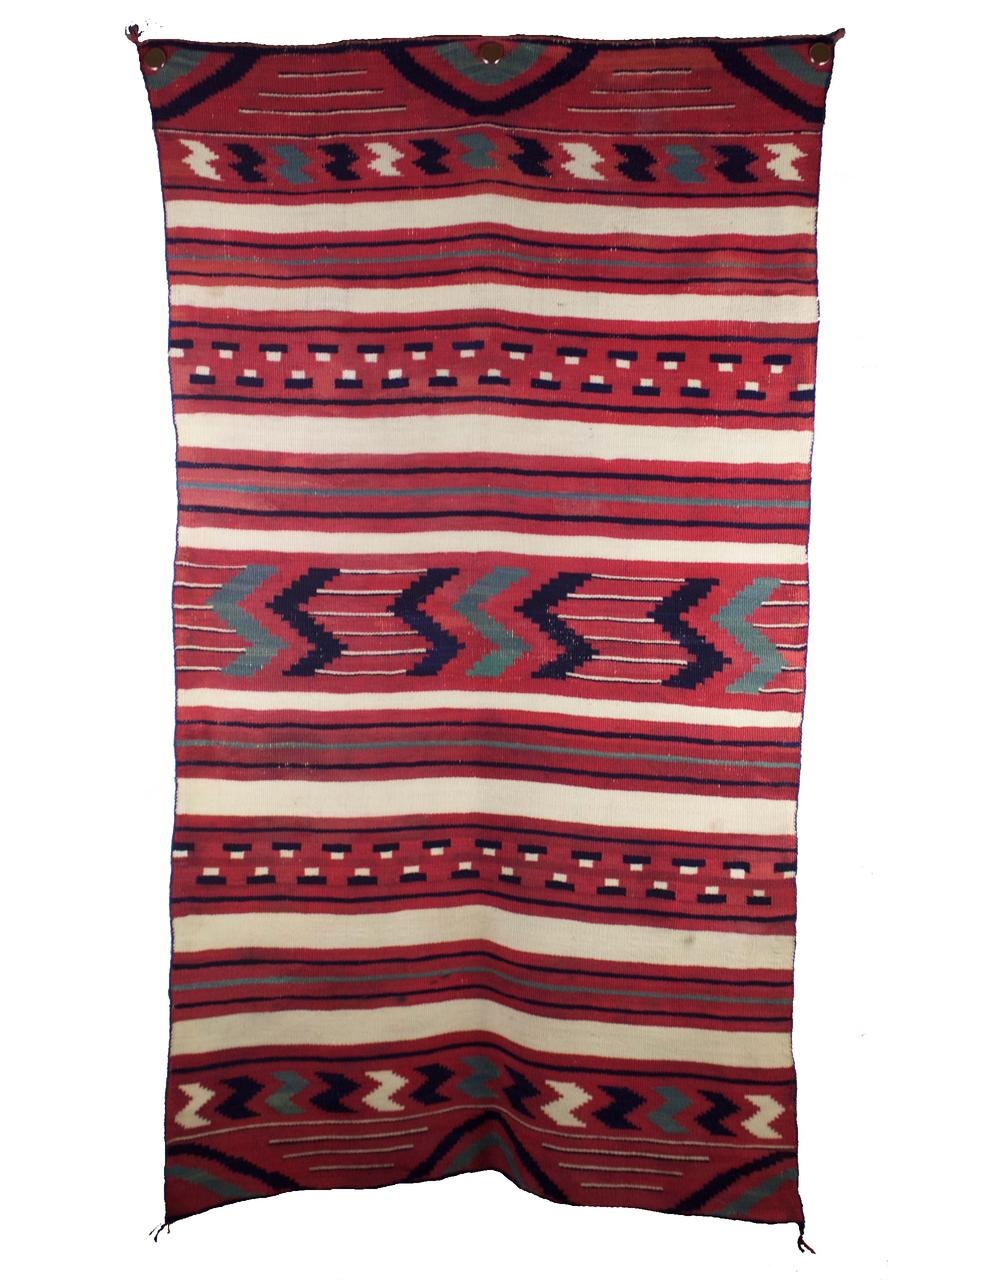 "Navajo Classic Childs Blanket c.1865-1870s 54"" x 29.5"" // CGL0018"